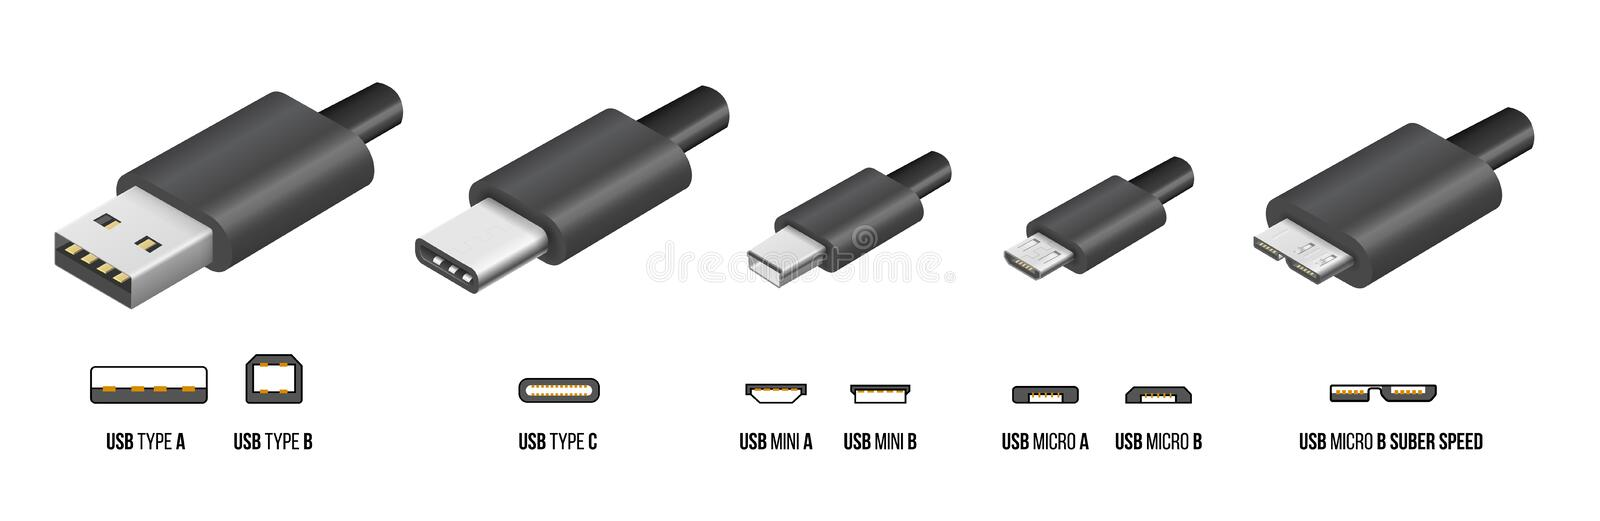 Type C d'USB illustration stock